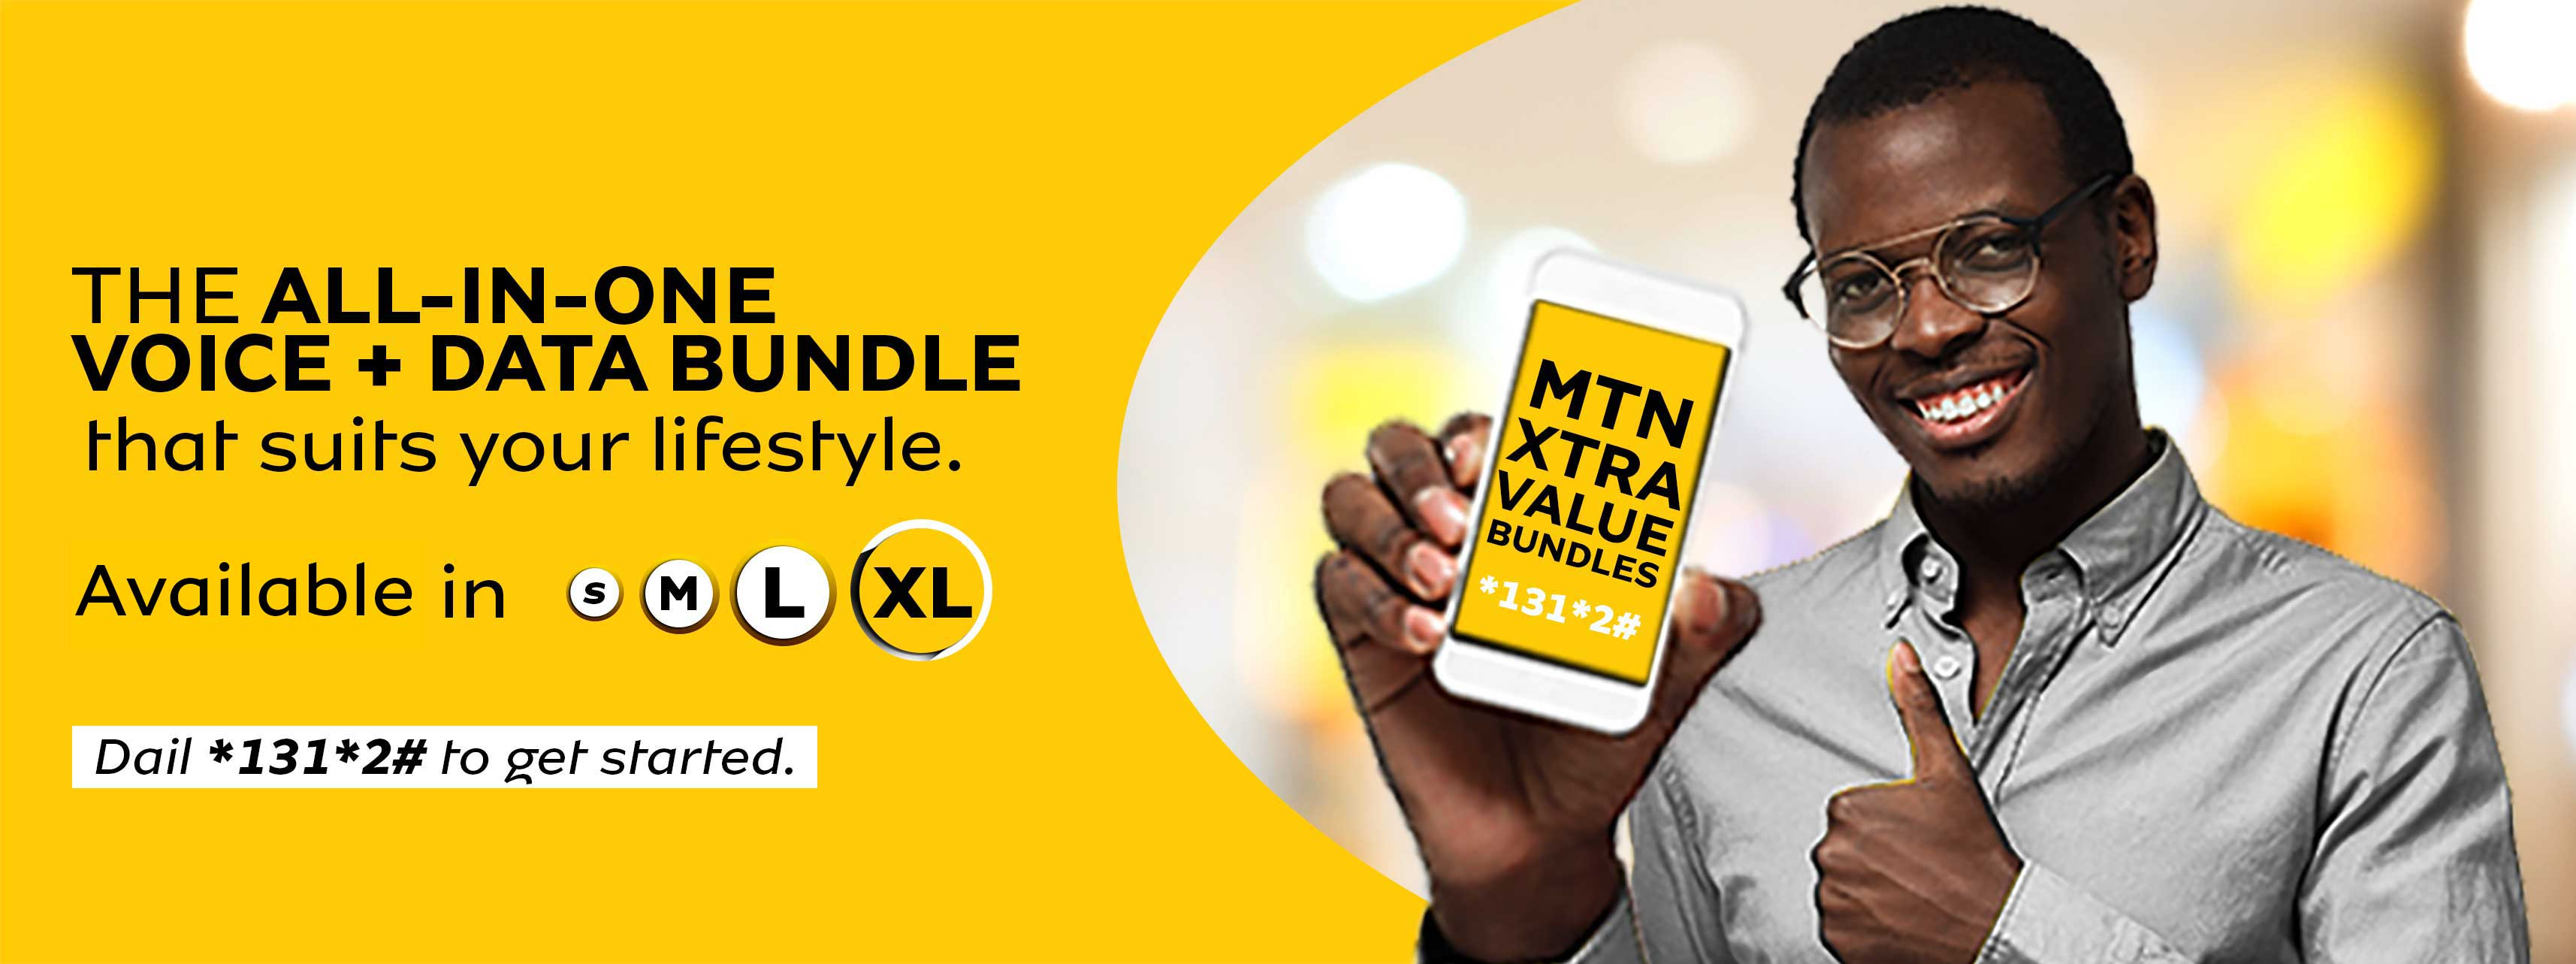 The Best MTN Call Plans to Enjoy Huge Data Benefits